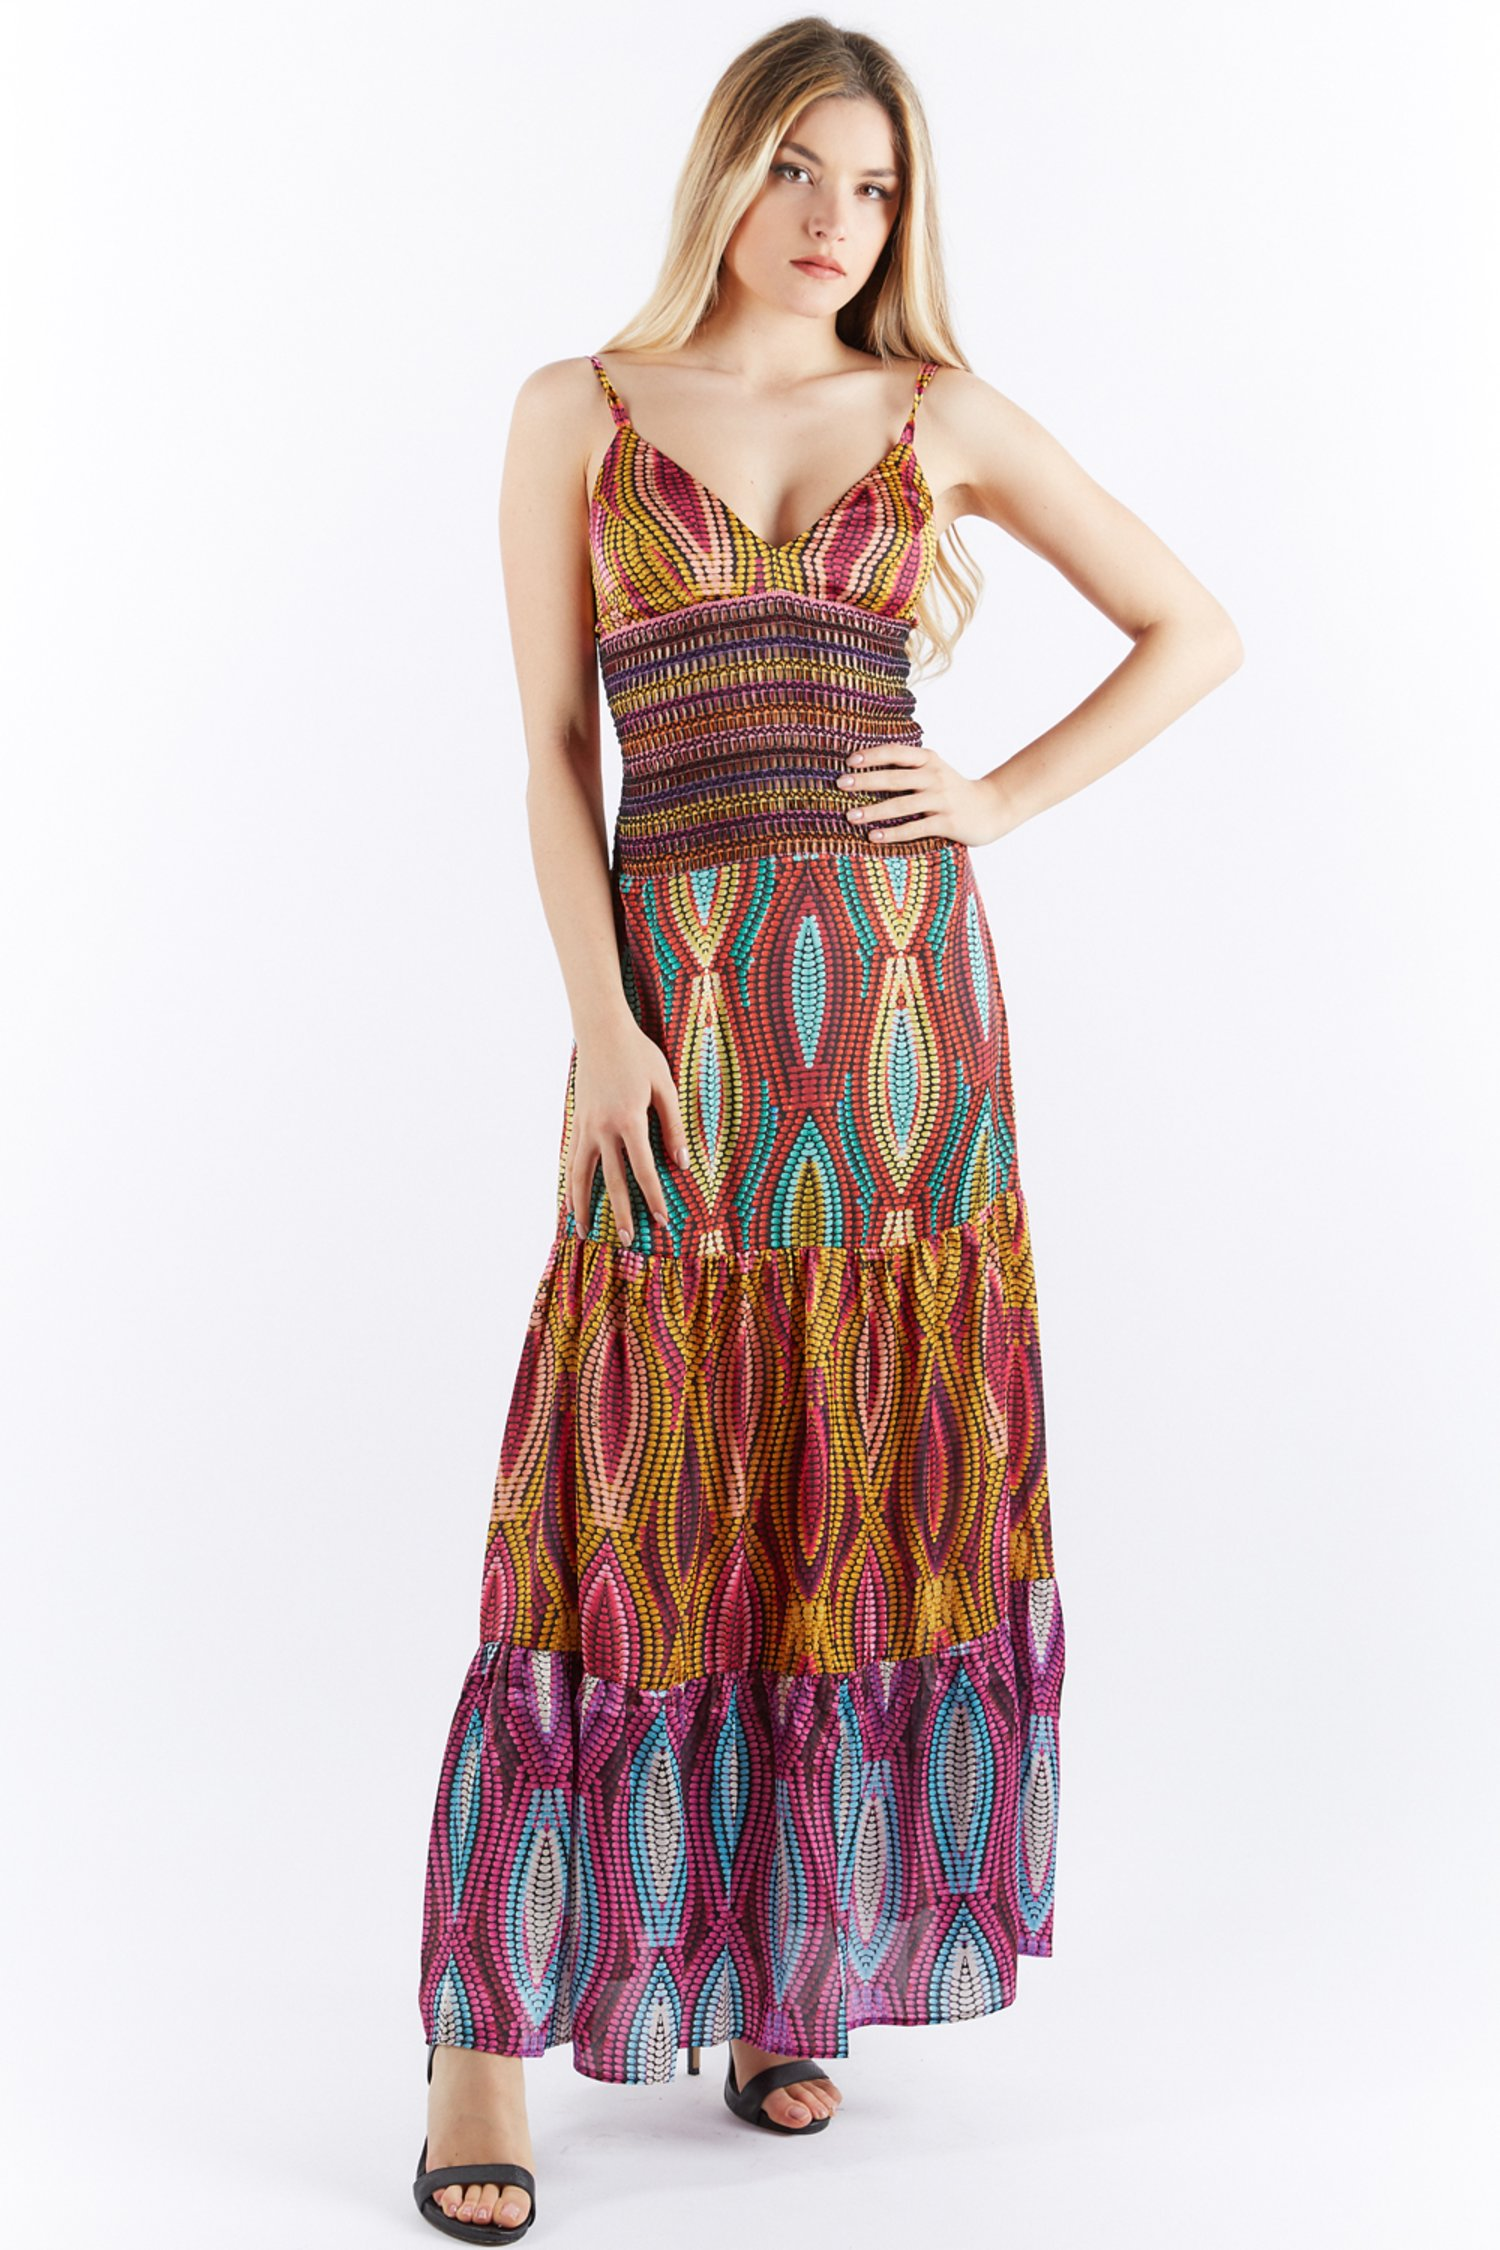 LONG MULTICOLOR DRESS WITH FLOUNCES AND TRIMMINGS - Kese+Kefu+Kero